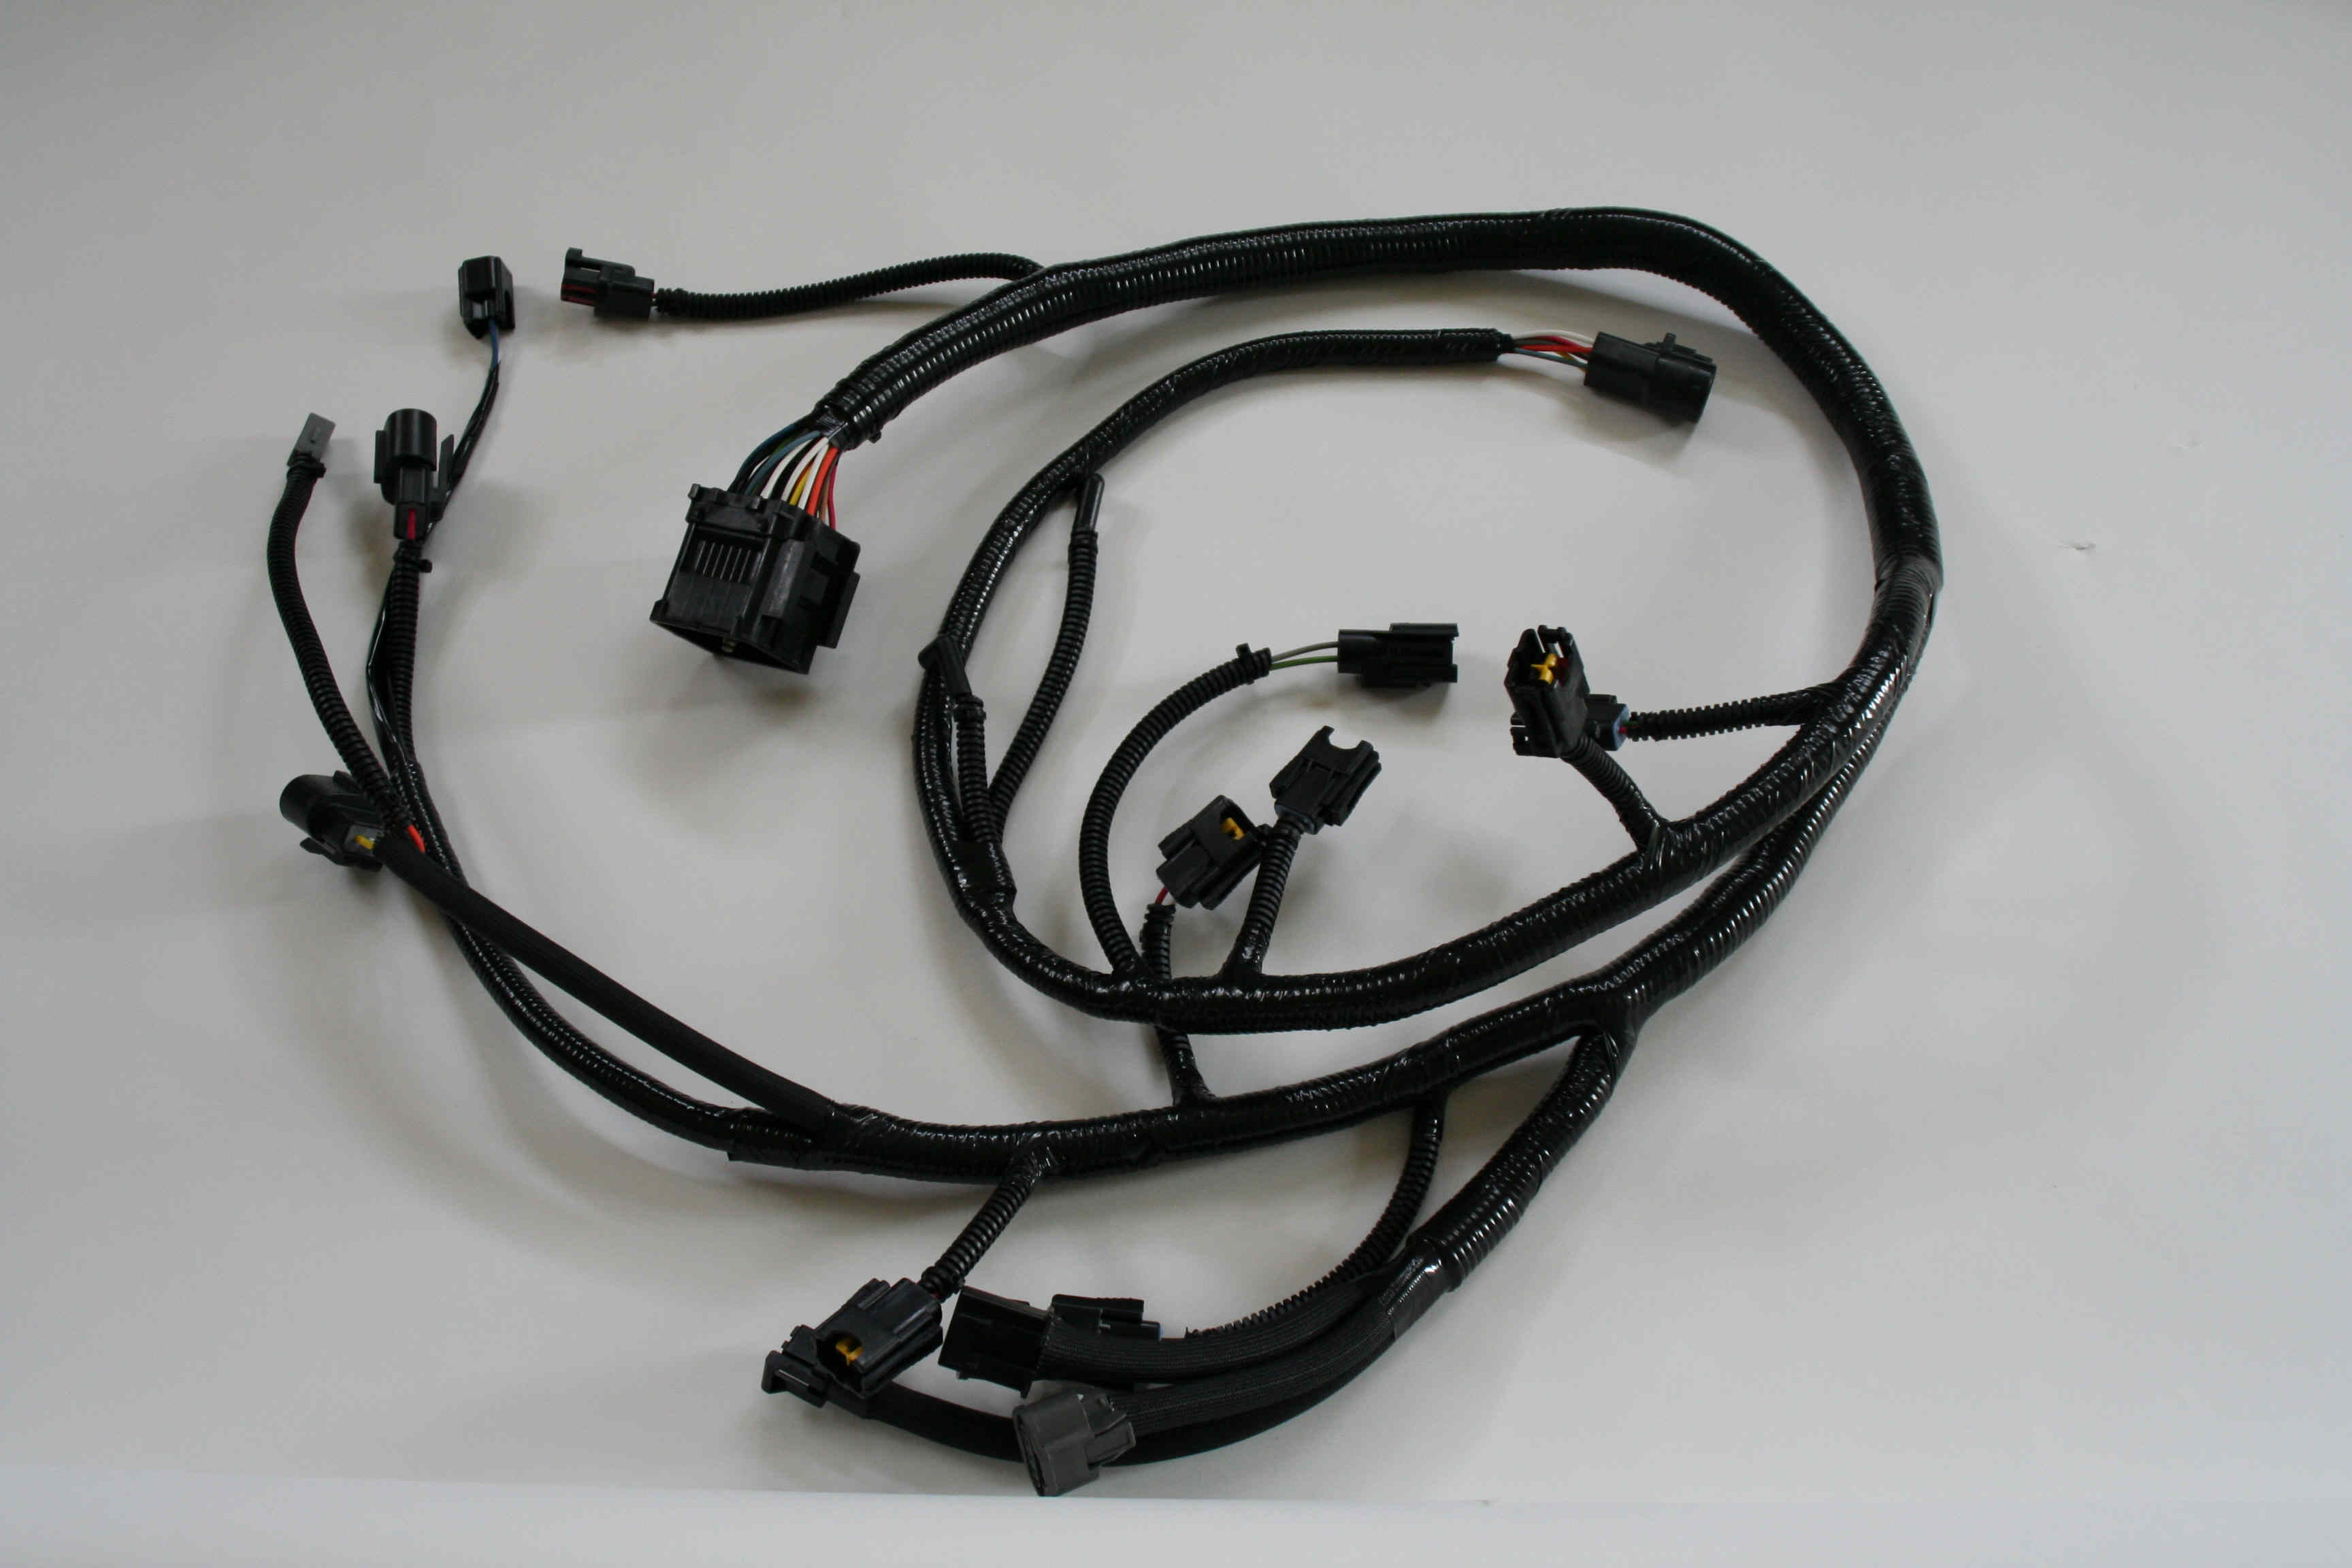 Ford Replacement Harnesses Harness 302 Engine Wiring Whether You Are A Manufacturer Looking For Custom Work Or Customer With Late Model Vehicle In Disrepair Chances We Can Help